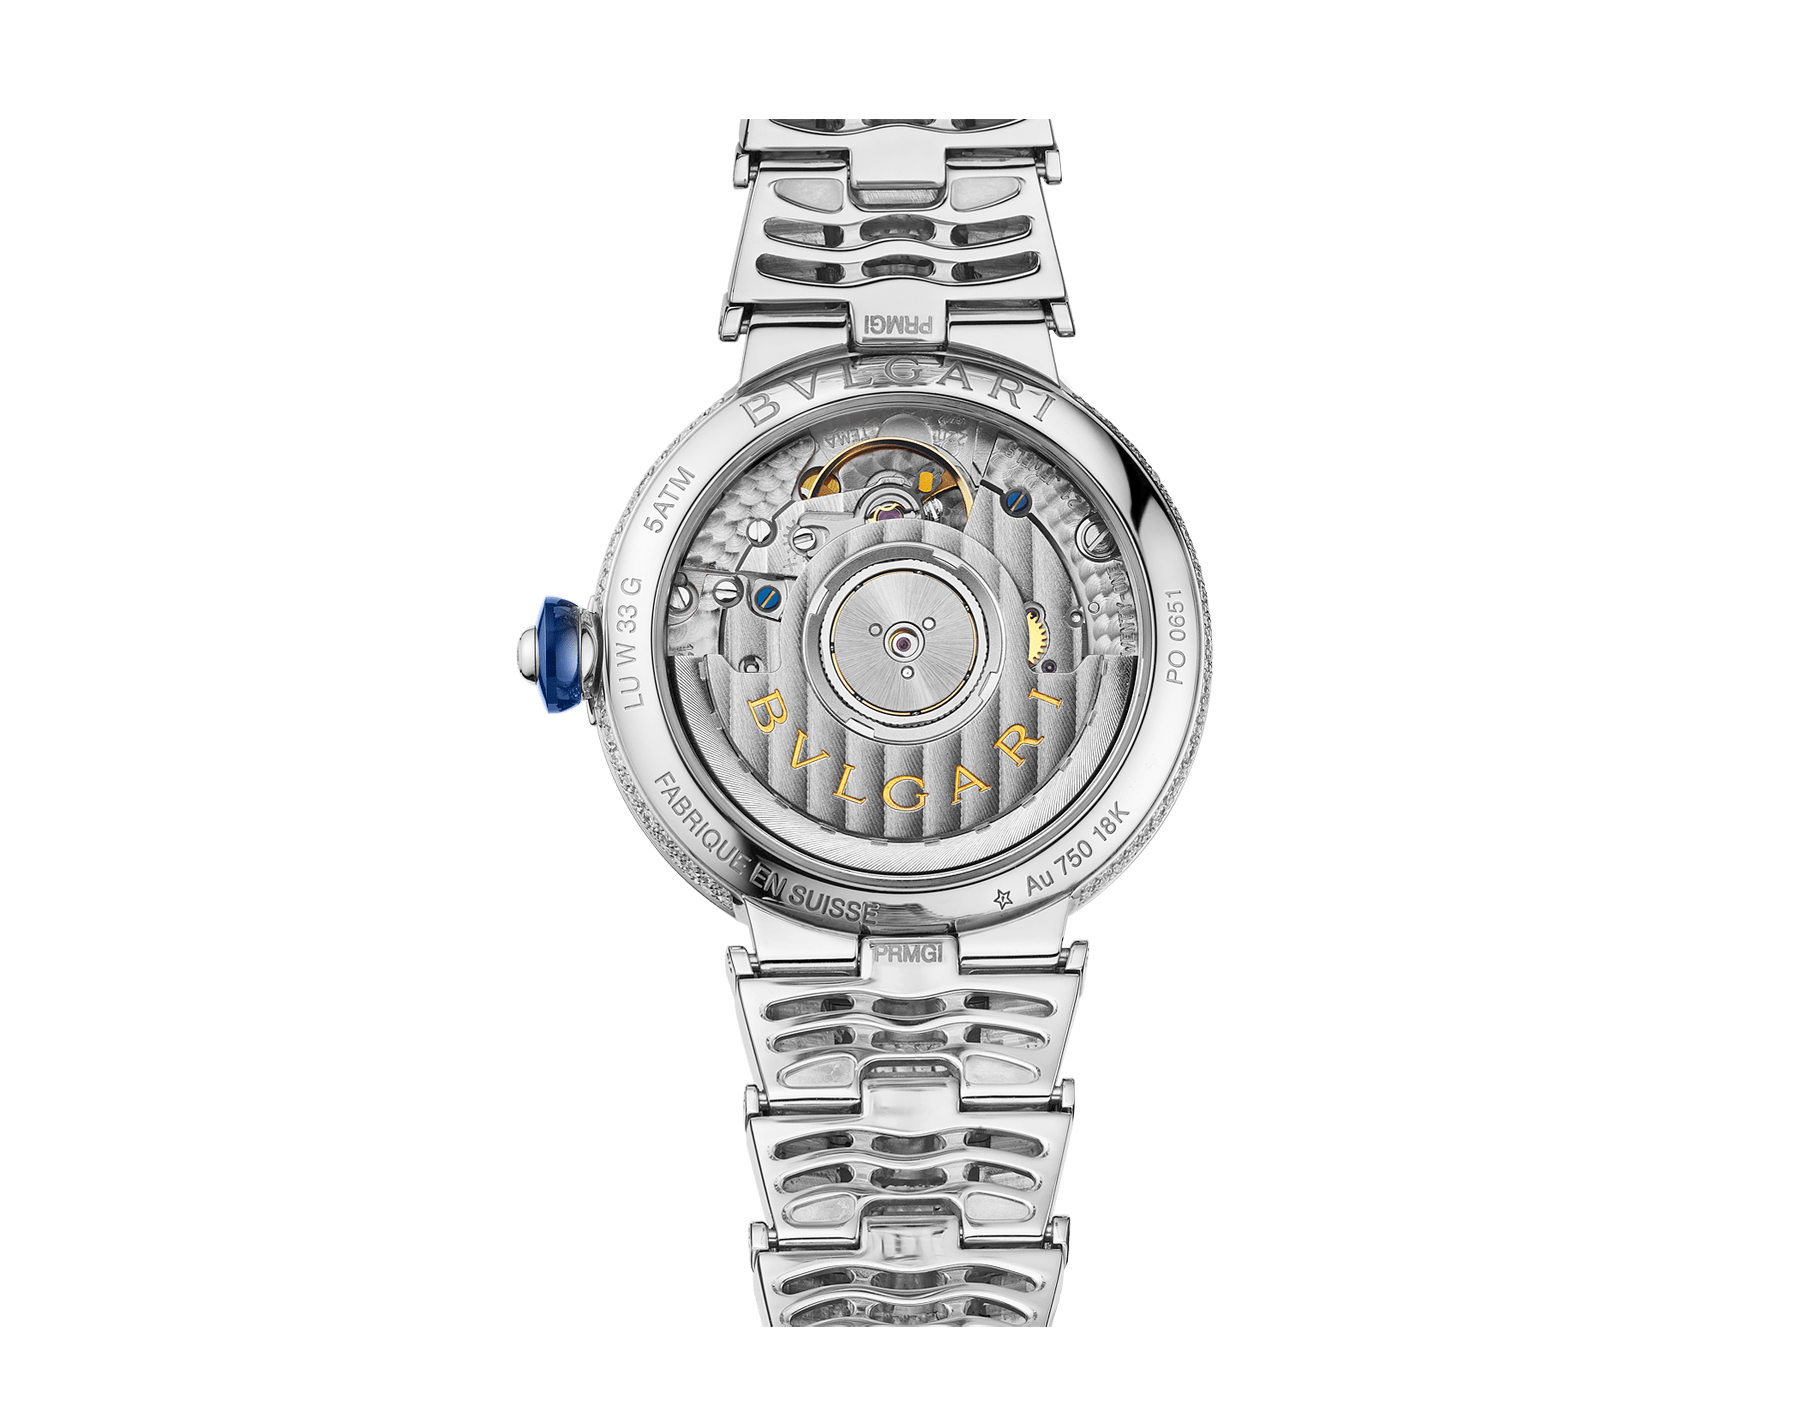 LVCEA watch in 18 kt white gold with brilliant-cut diamond set case and bracelet, and full pavé diamond dial. 102365 image 4